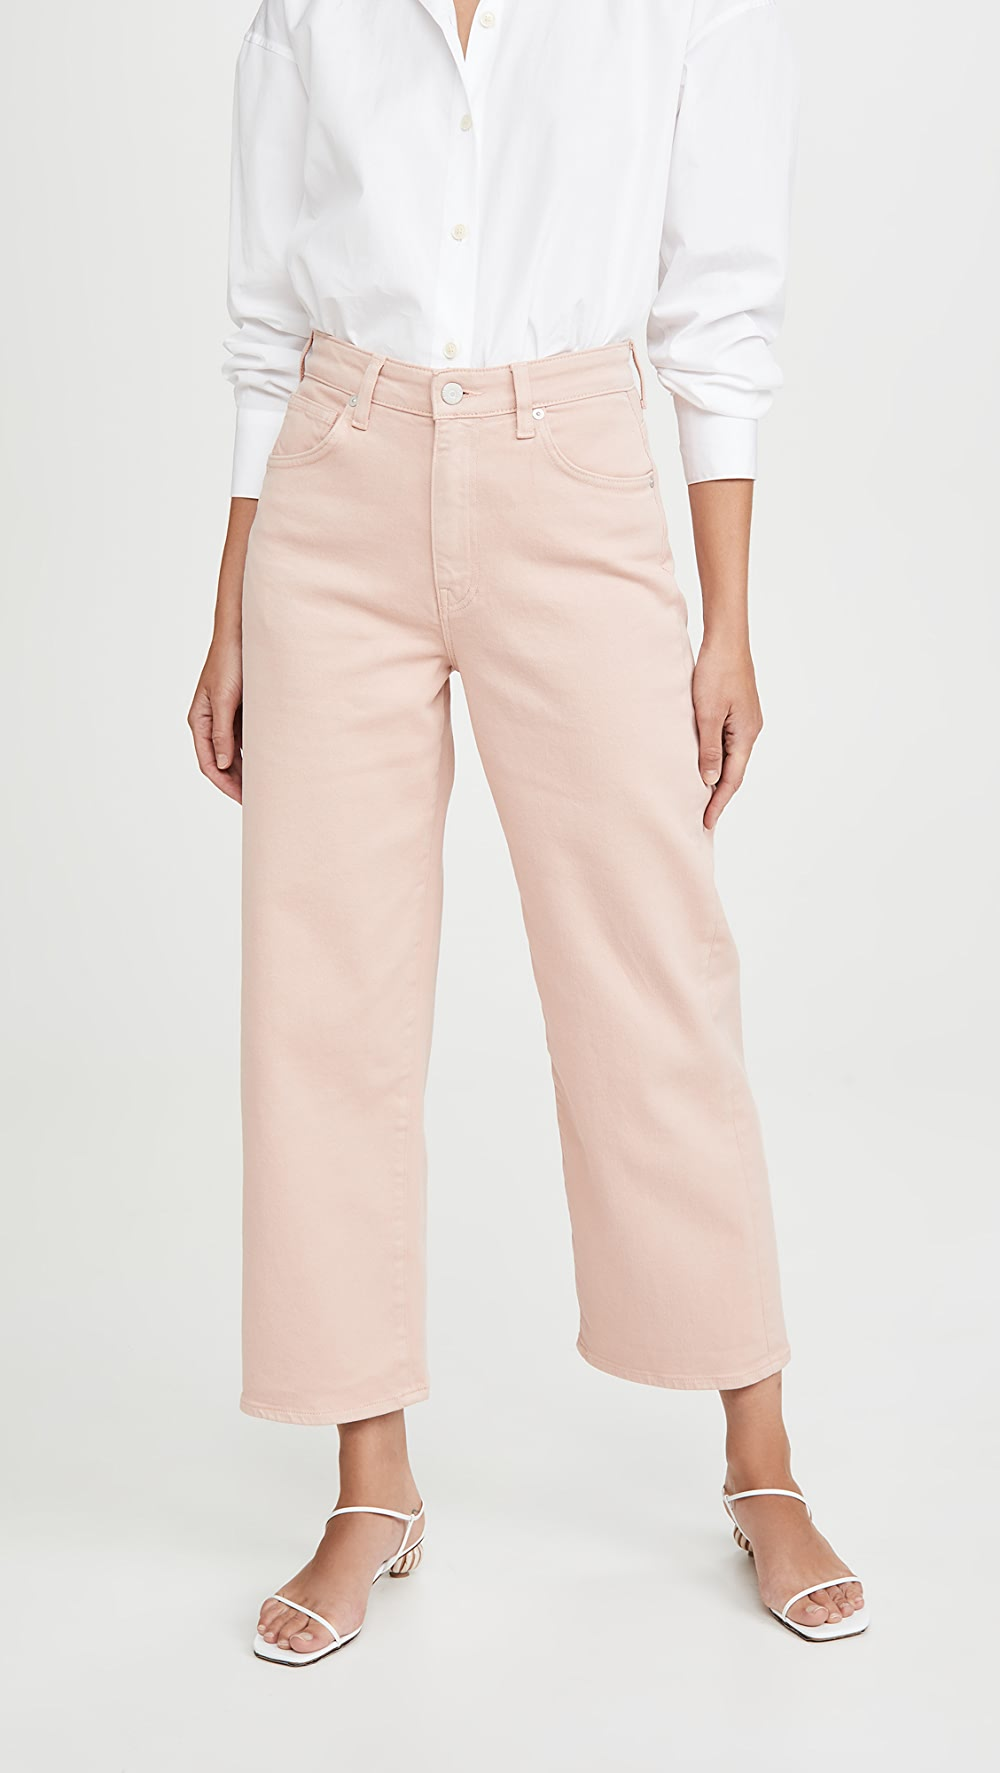 100% Quality Cqy - Sunday Wide Leg Crop Jeans High Quality And Low Overhead